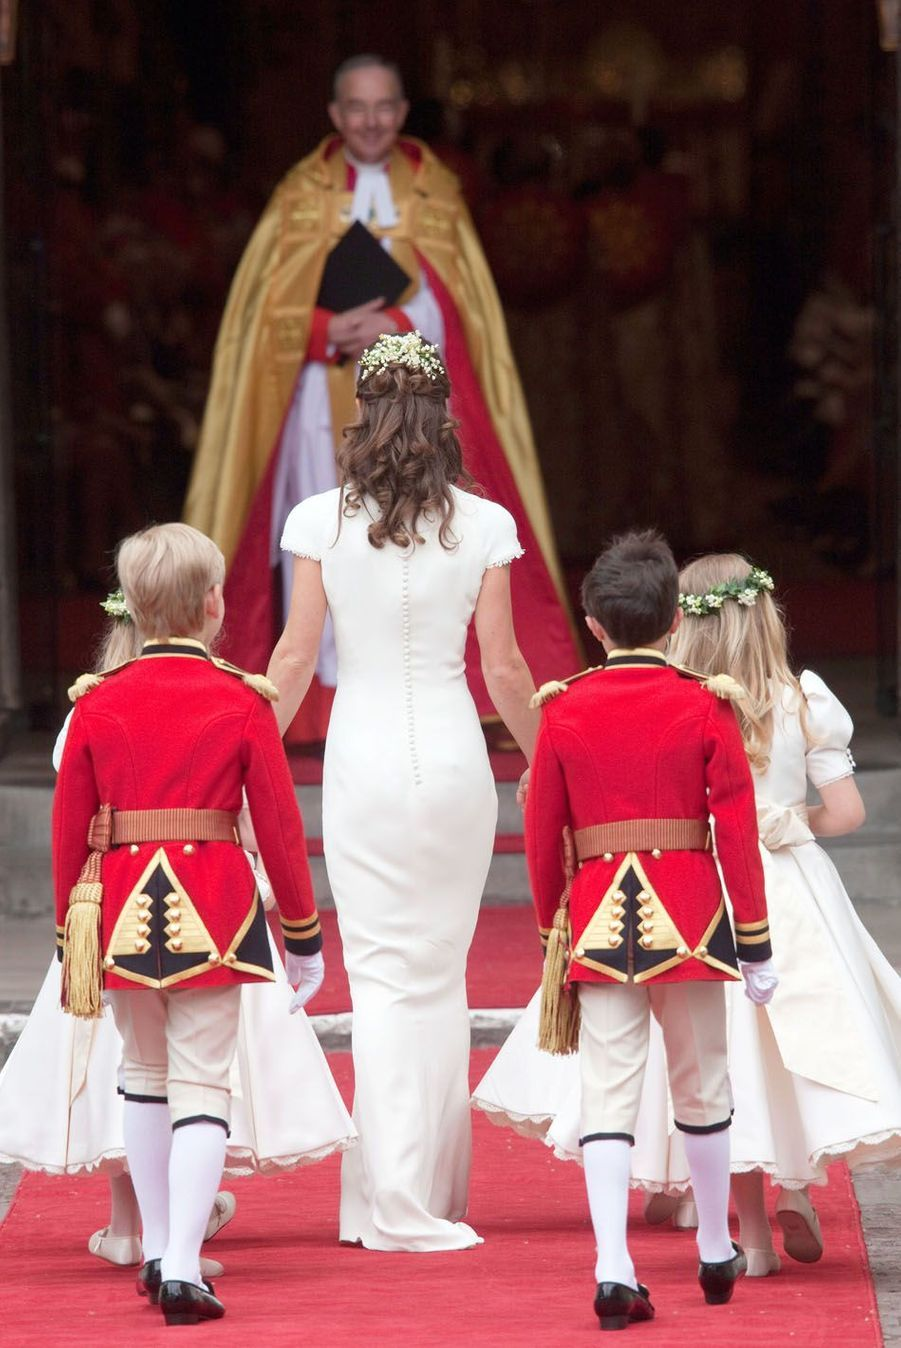 Pippa Middleton Au Mariage De Sa Soeur Kate Middleton Avec Le Prince William, Le 29 Avril 2011 À Londres 8